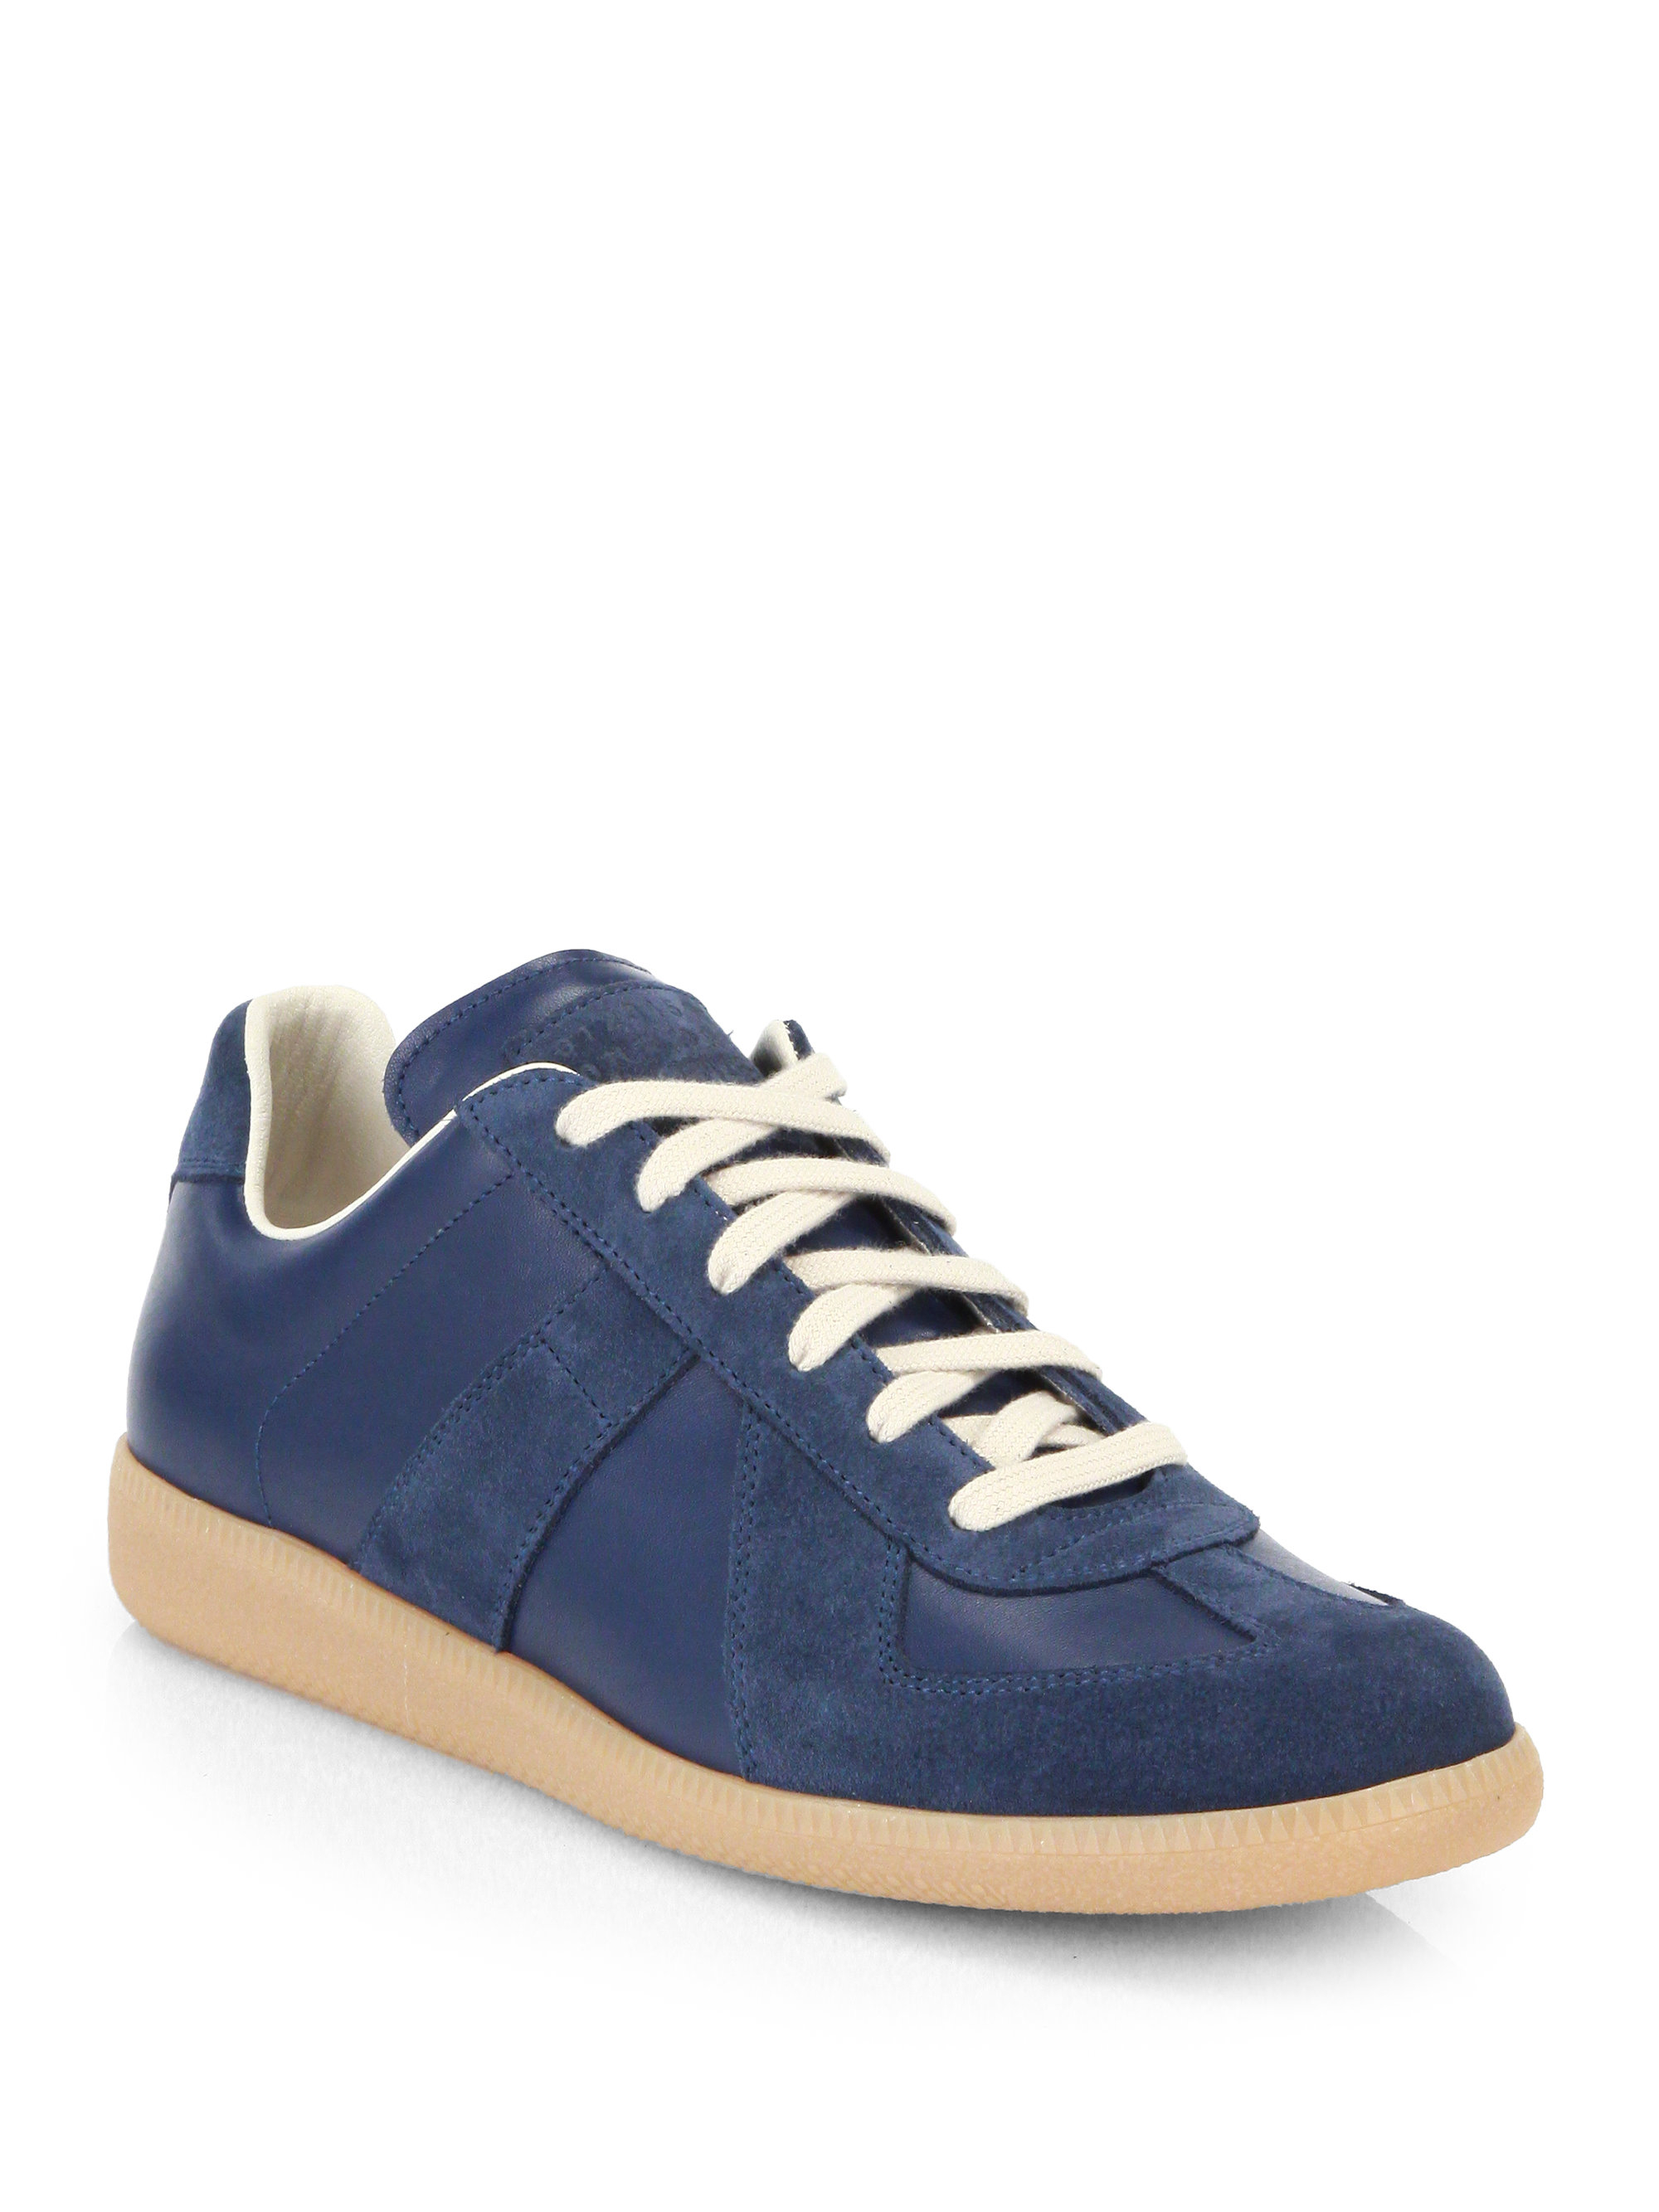 Maison Margiela Replica Suede Amp Leather Lace Up Sneakers In Blue For Men Royal Blue Lyst